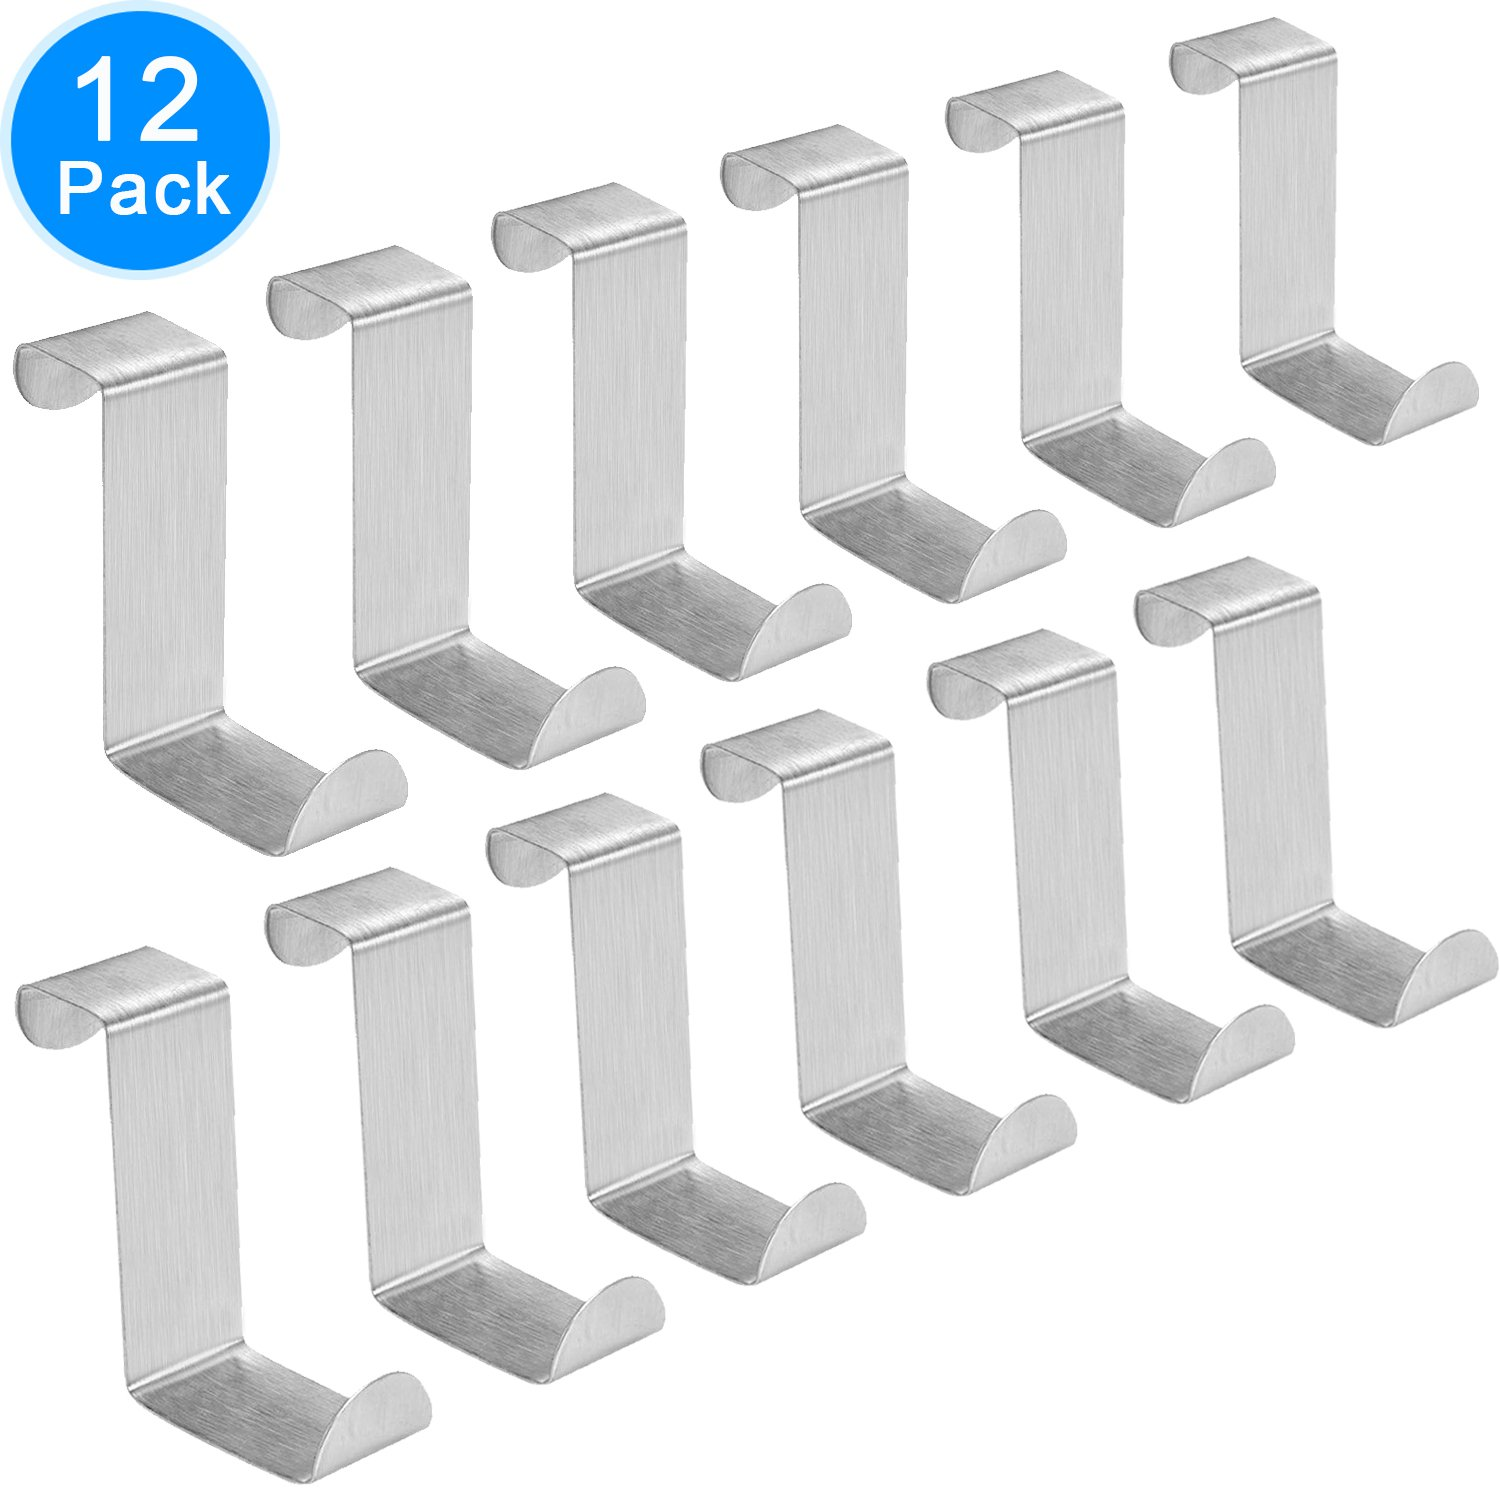 Austor Pack of 12 Stainless Steel Over Door Hooks Hanger for Office Kitchen Cabinet Draw Clothes